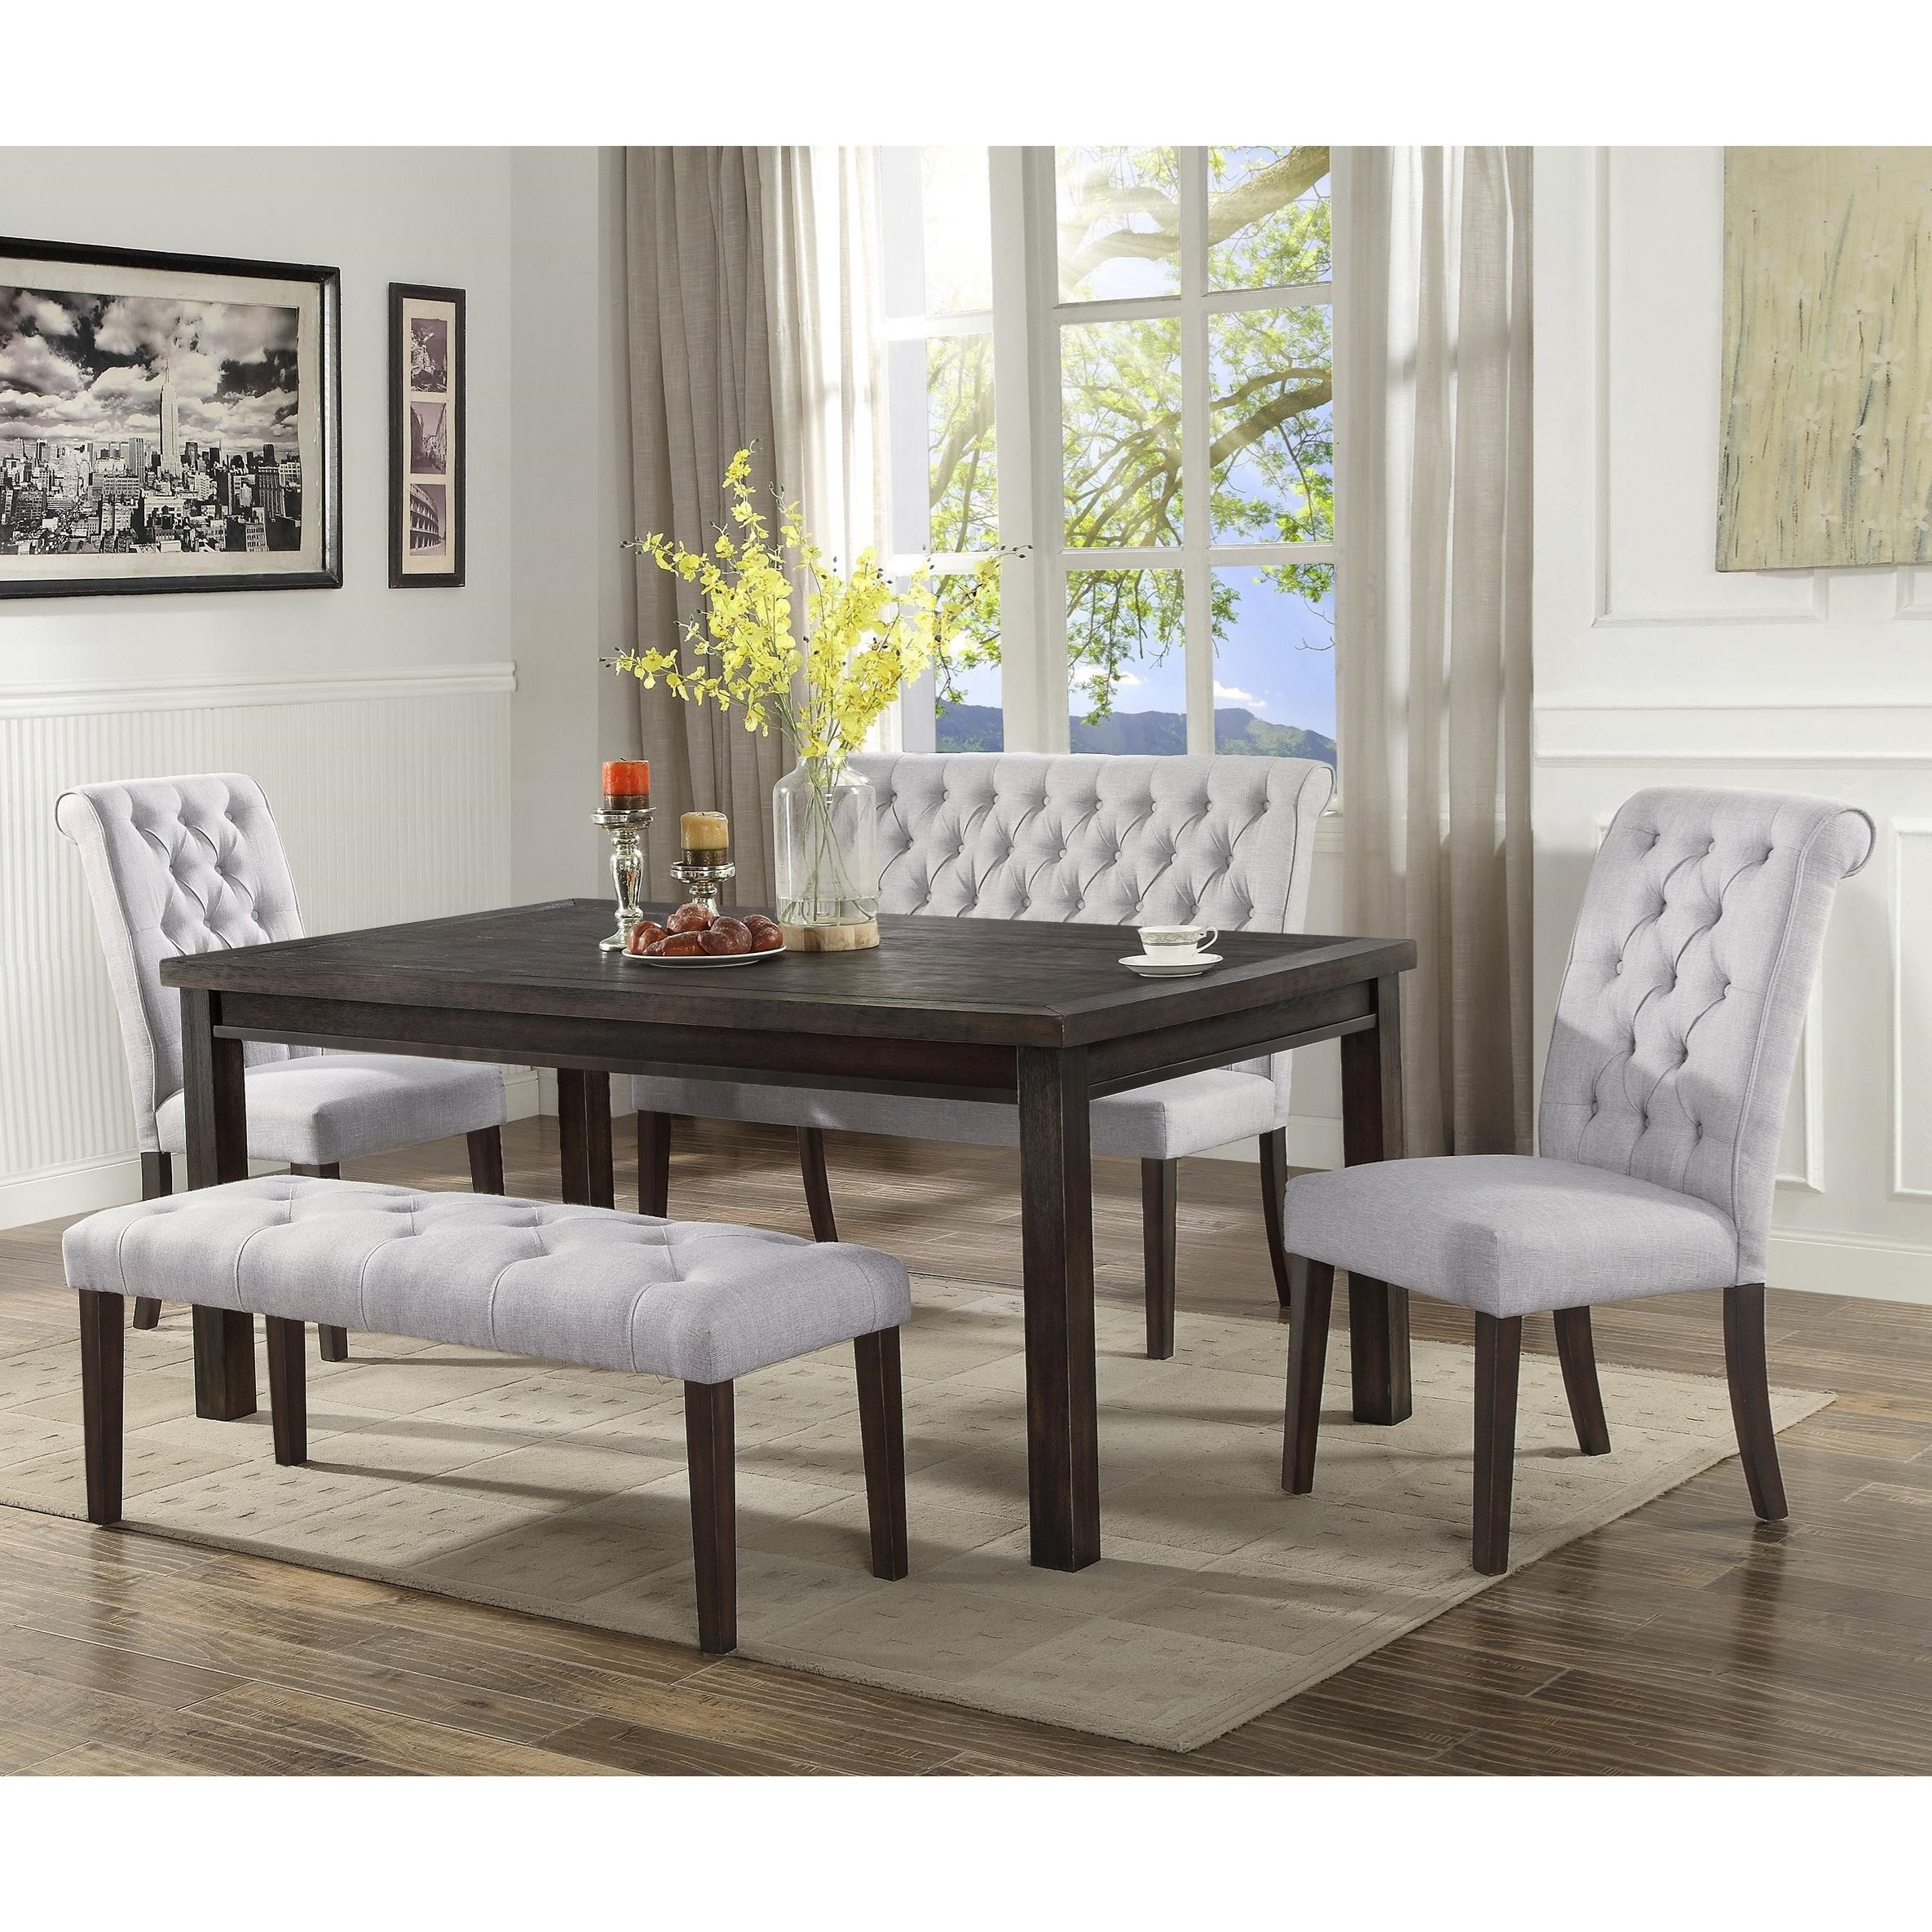 Crown Mark Palmer Dining Dining Set With Bench   Item Number: 2022T 4072+